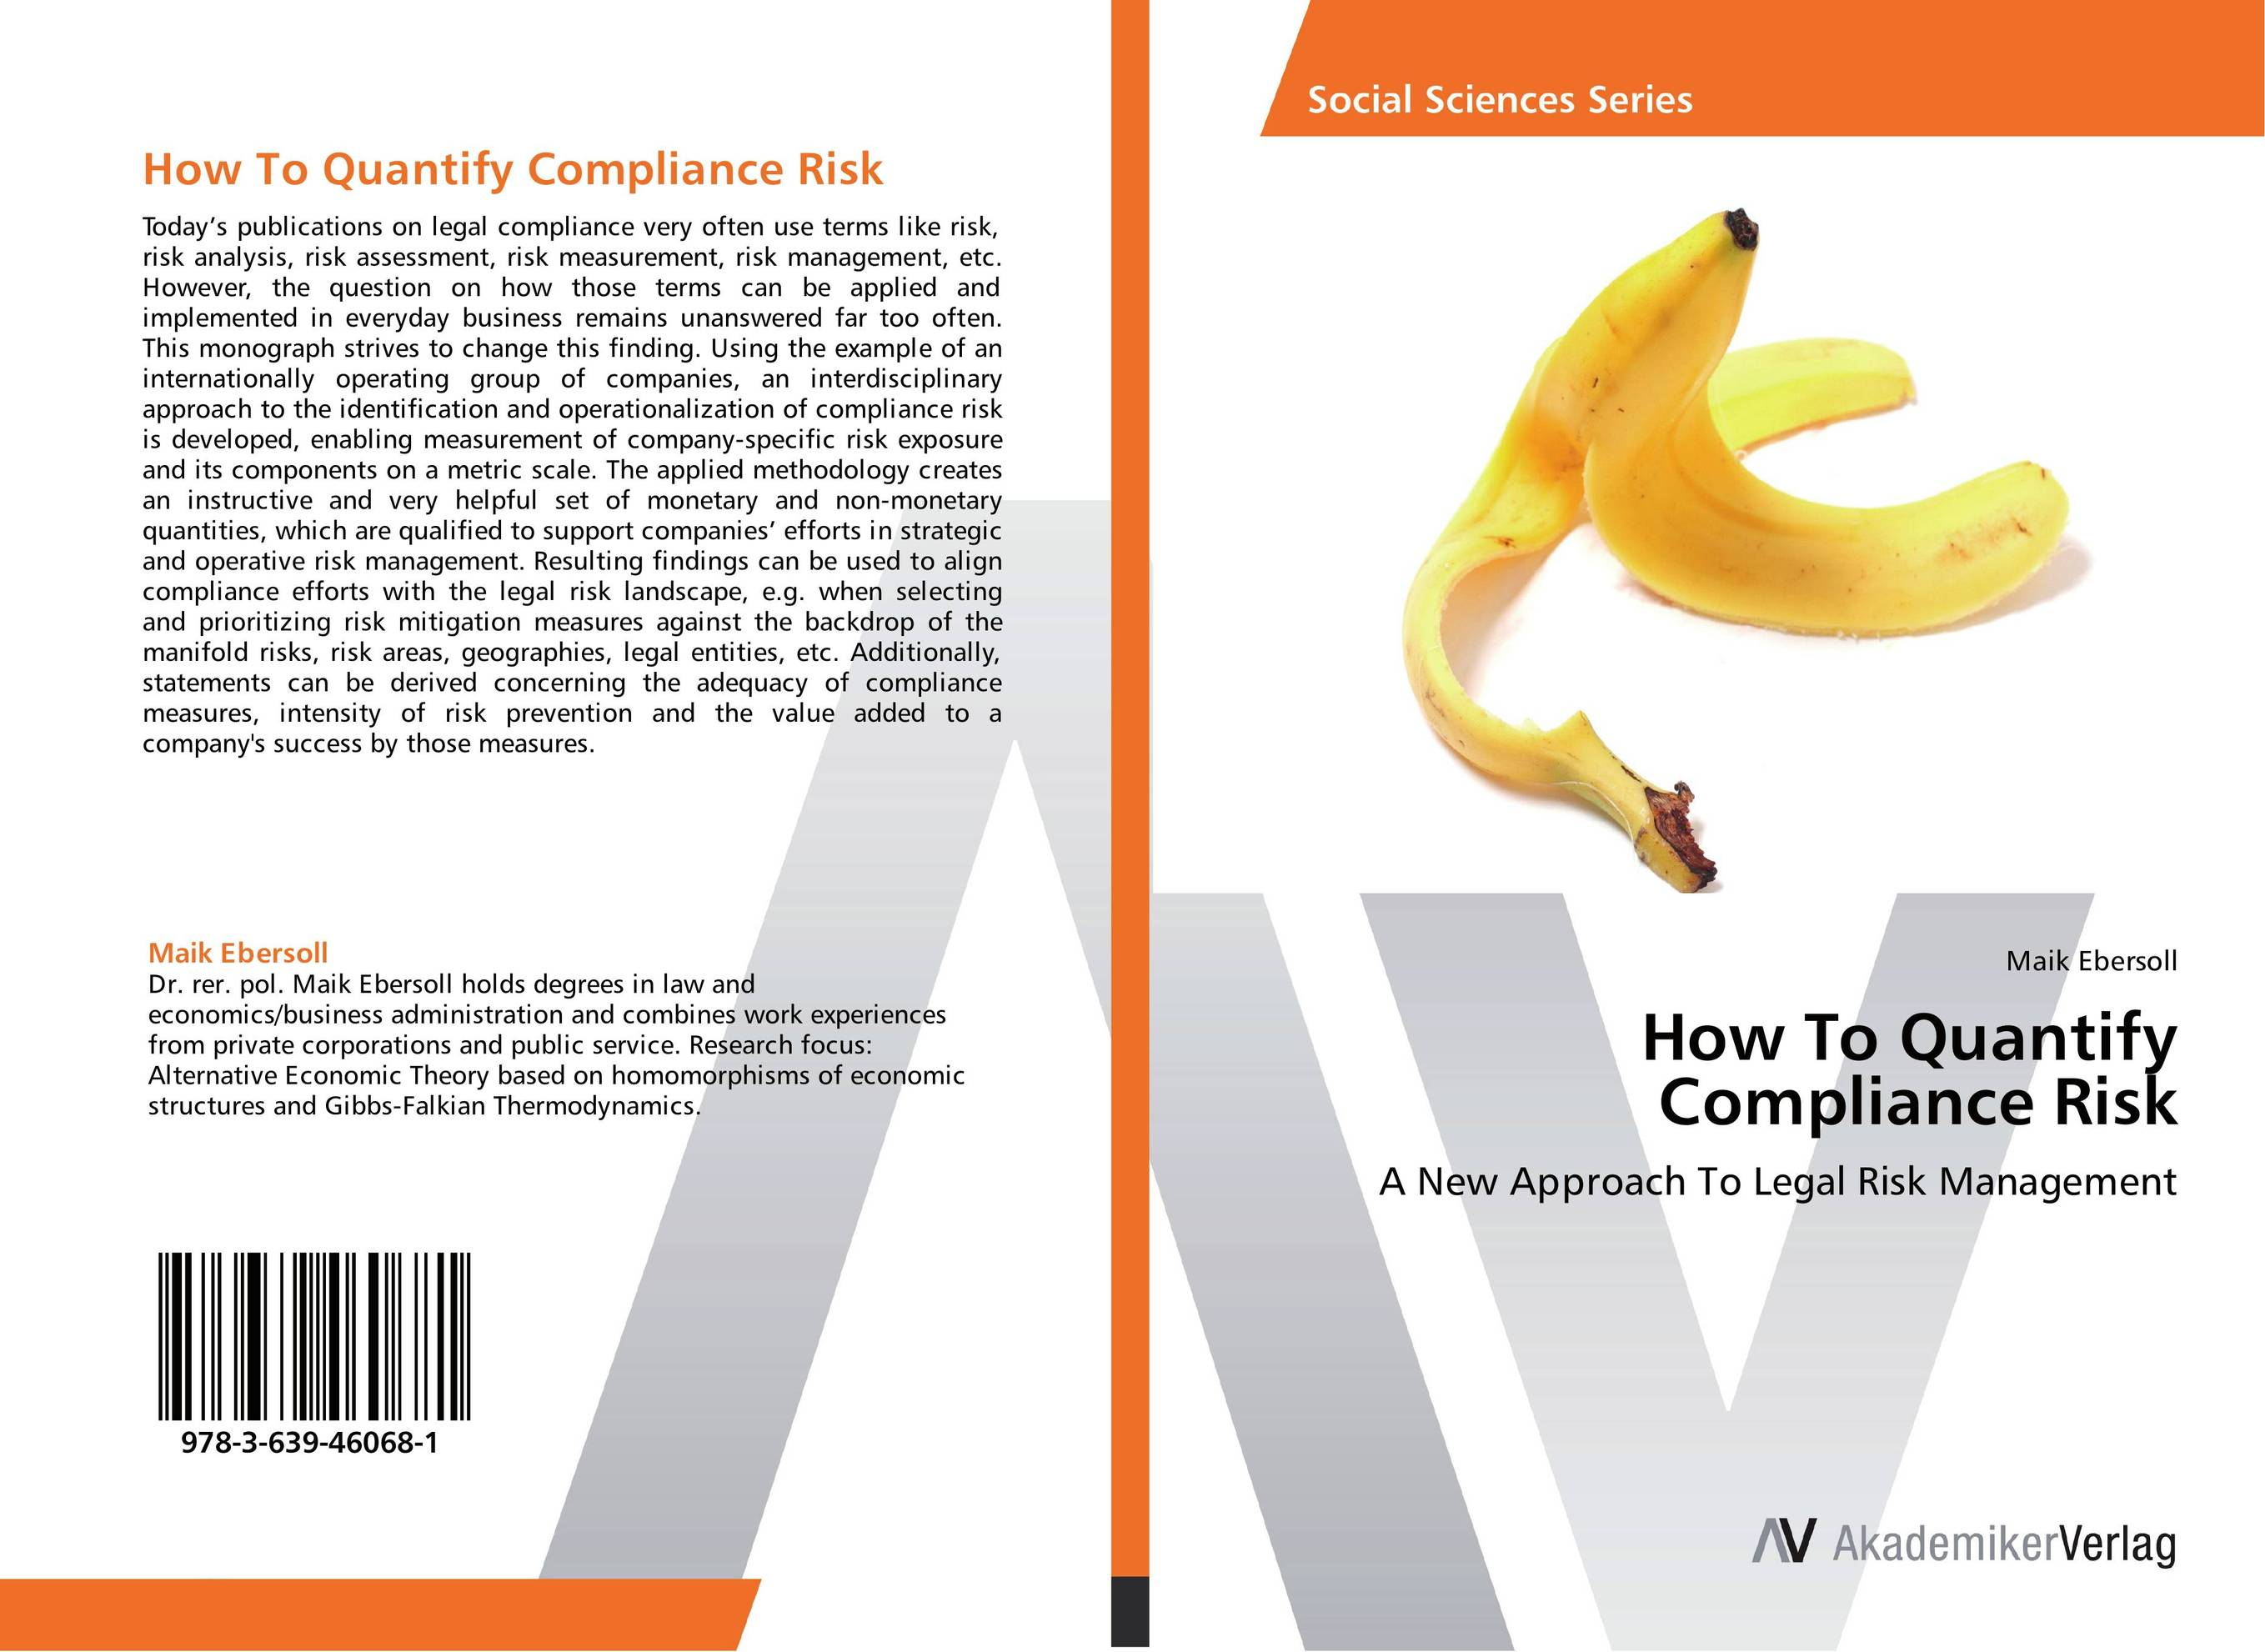 How To Quantify Compliance Risk robert moeller r coso enterprise risk management establishing effective governance risk and compliance grc processes